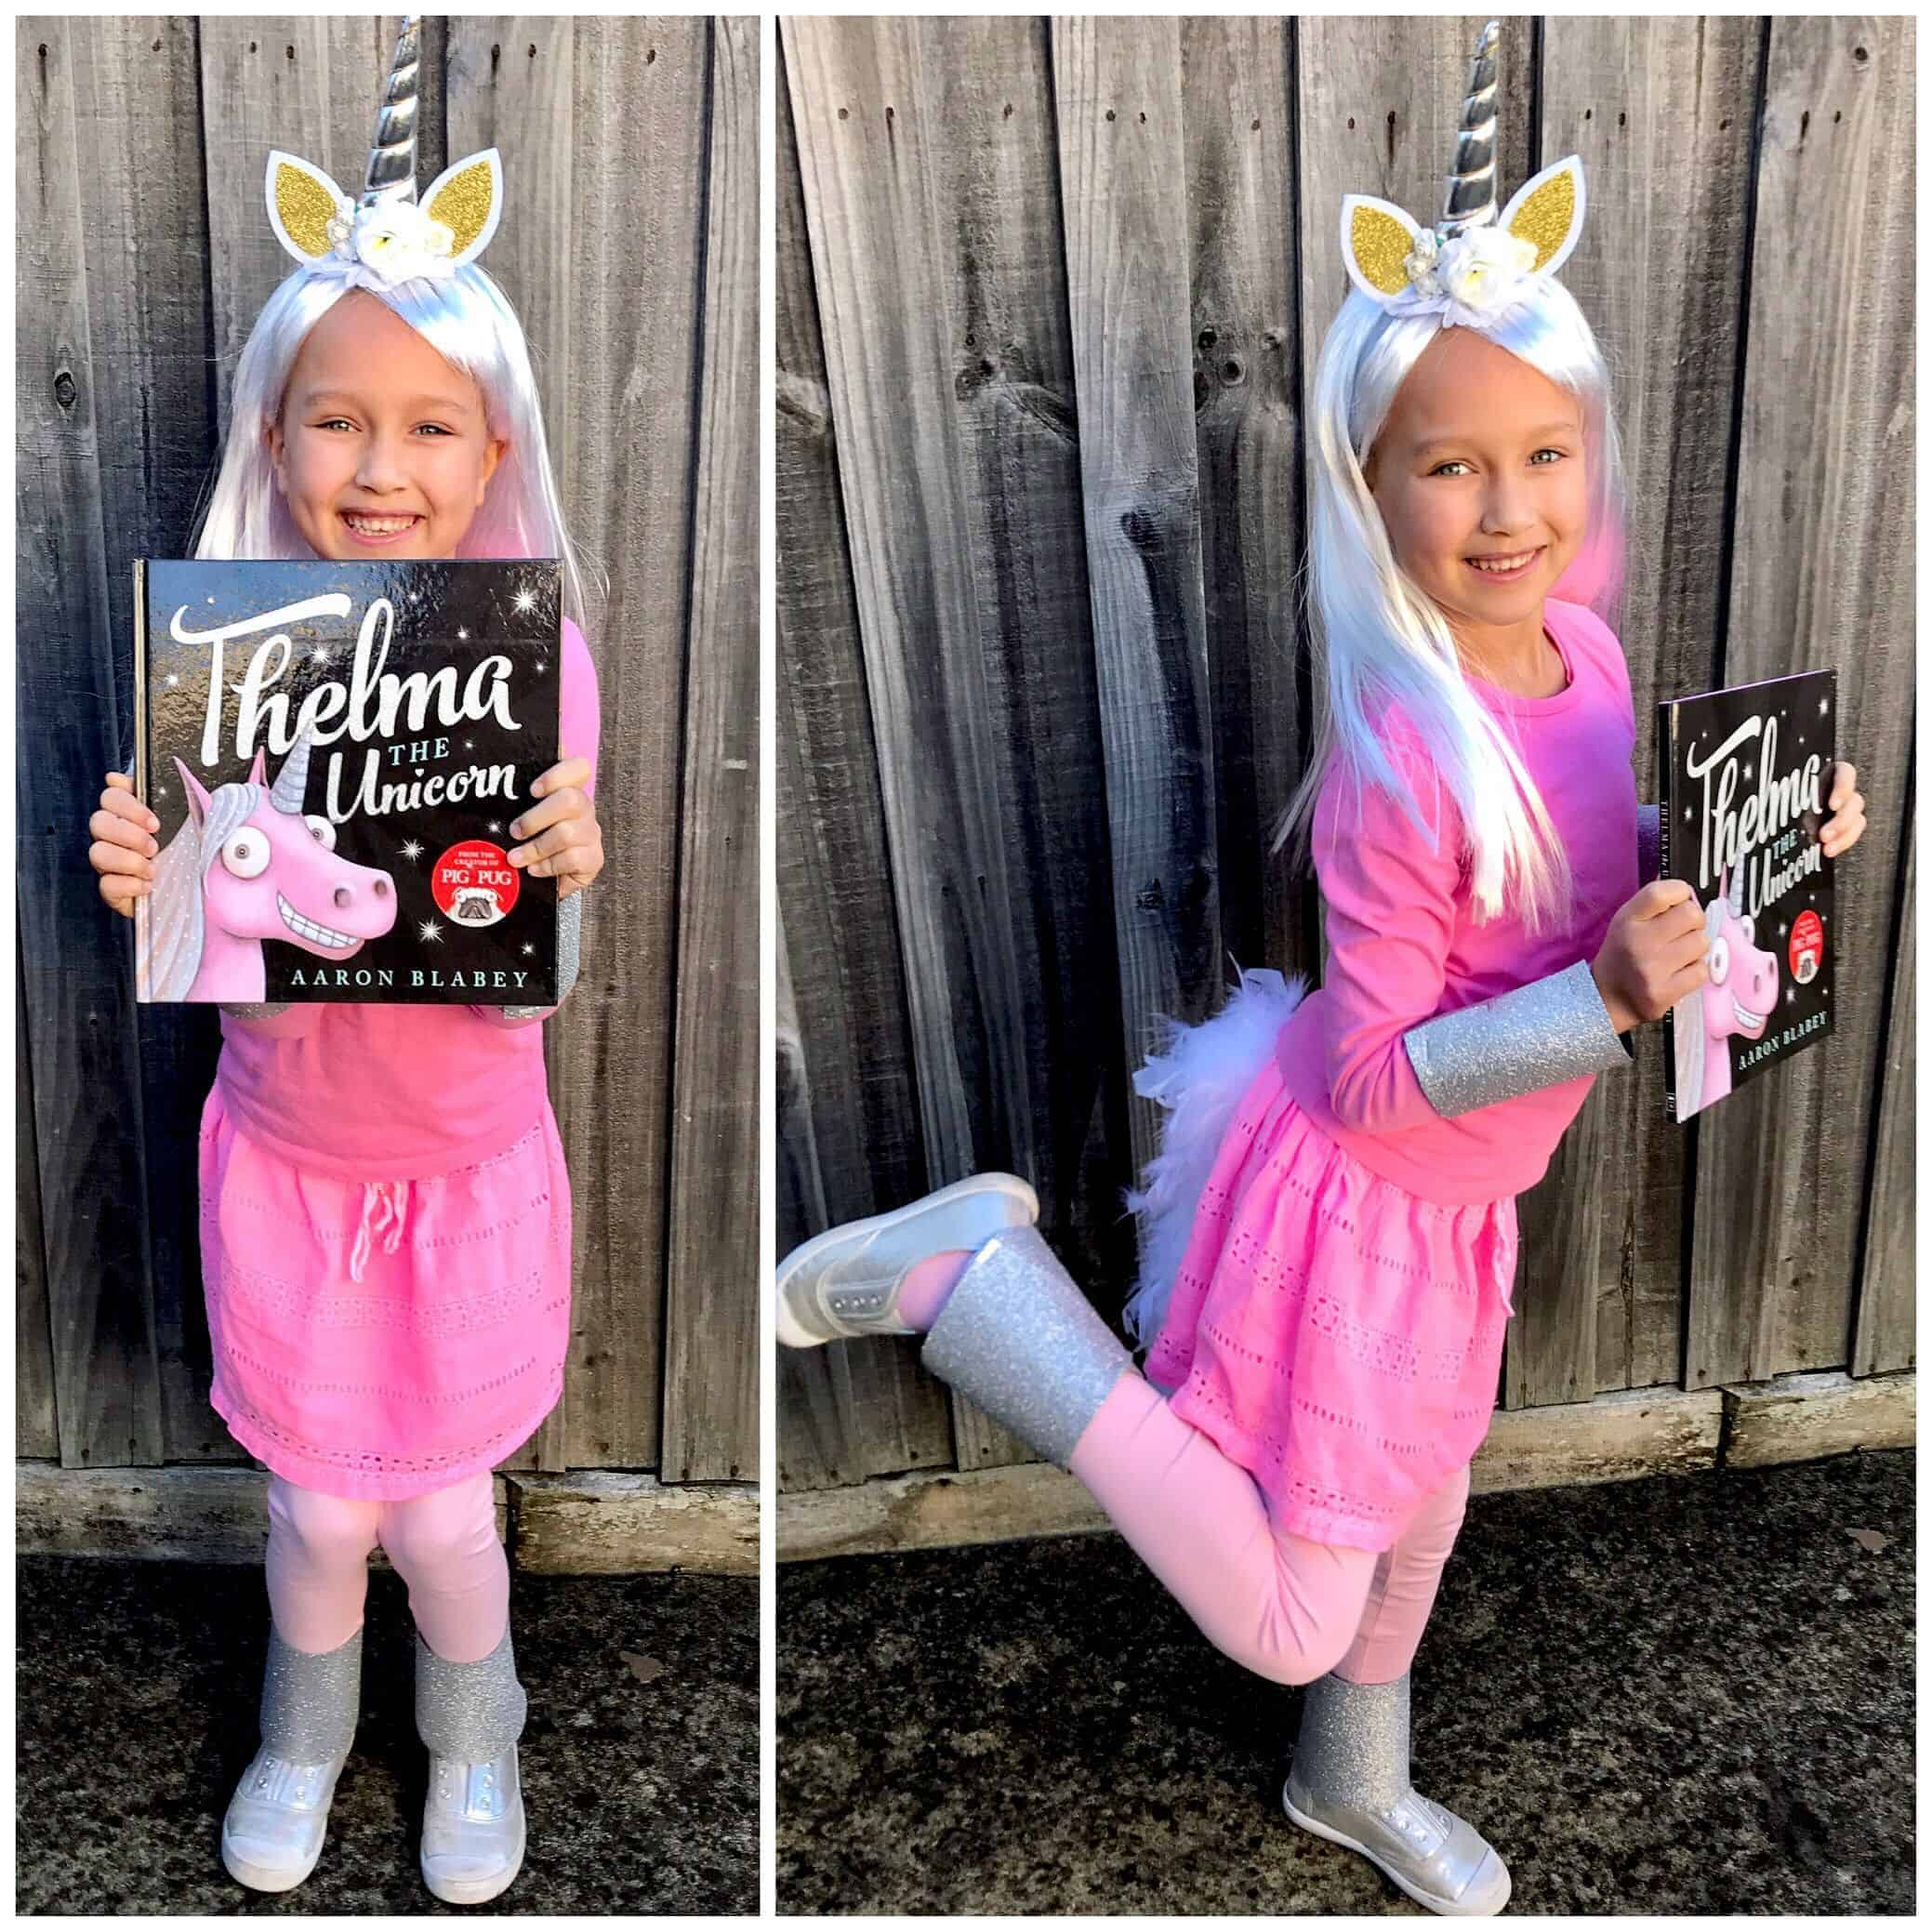 Thelma the unicorn book week costume ideas